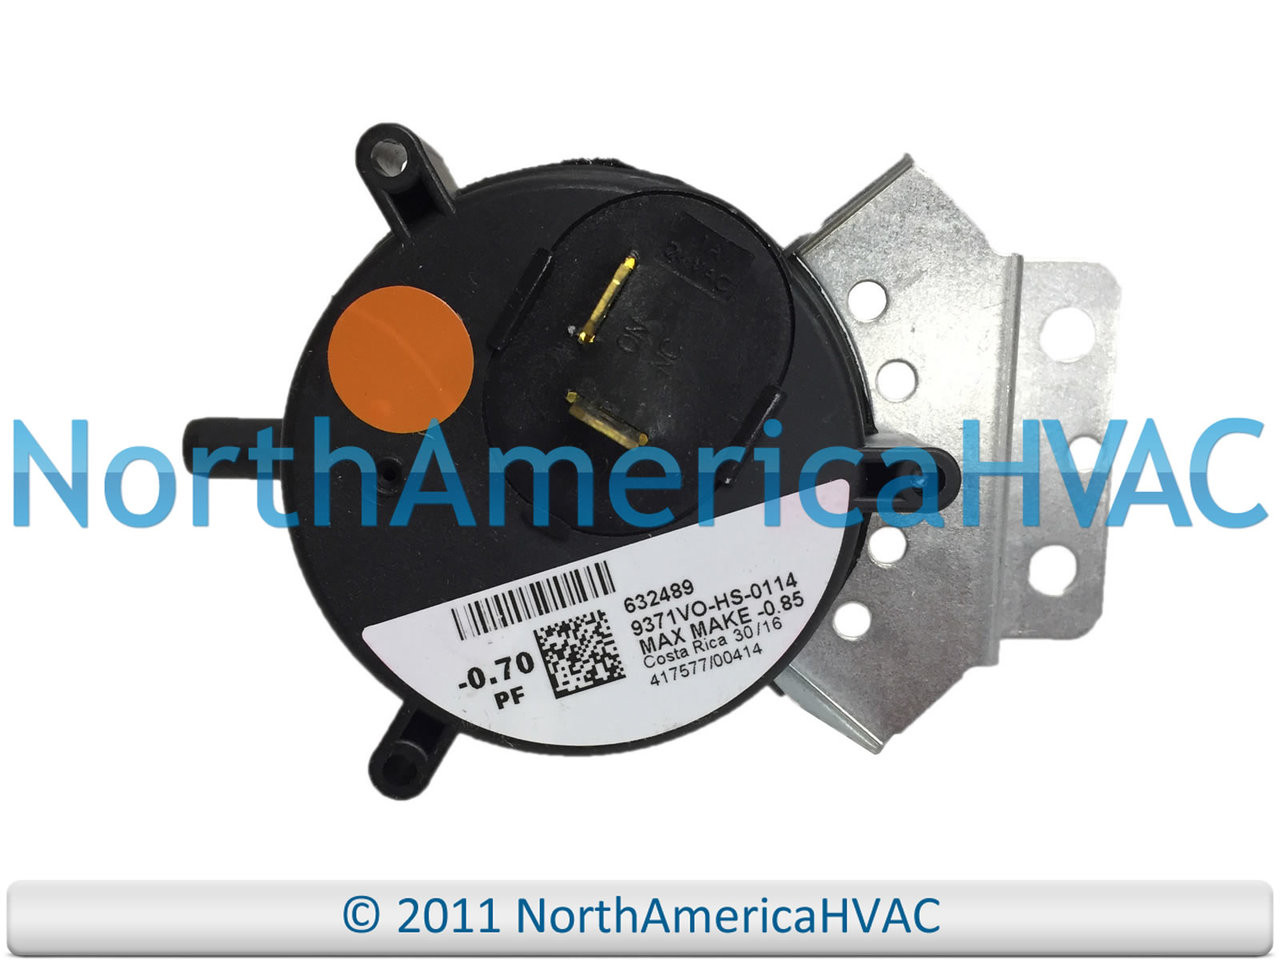 MPL Furnace Vent Air Pressure Switch OEM Replacement 9371VO-HS-0112